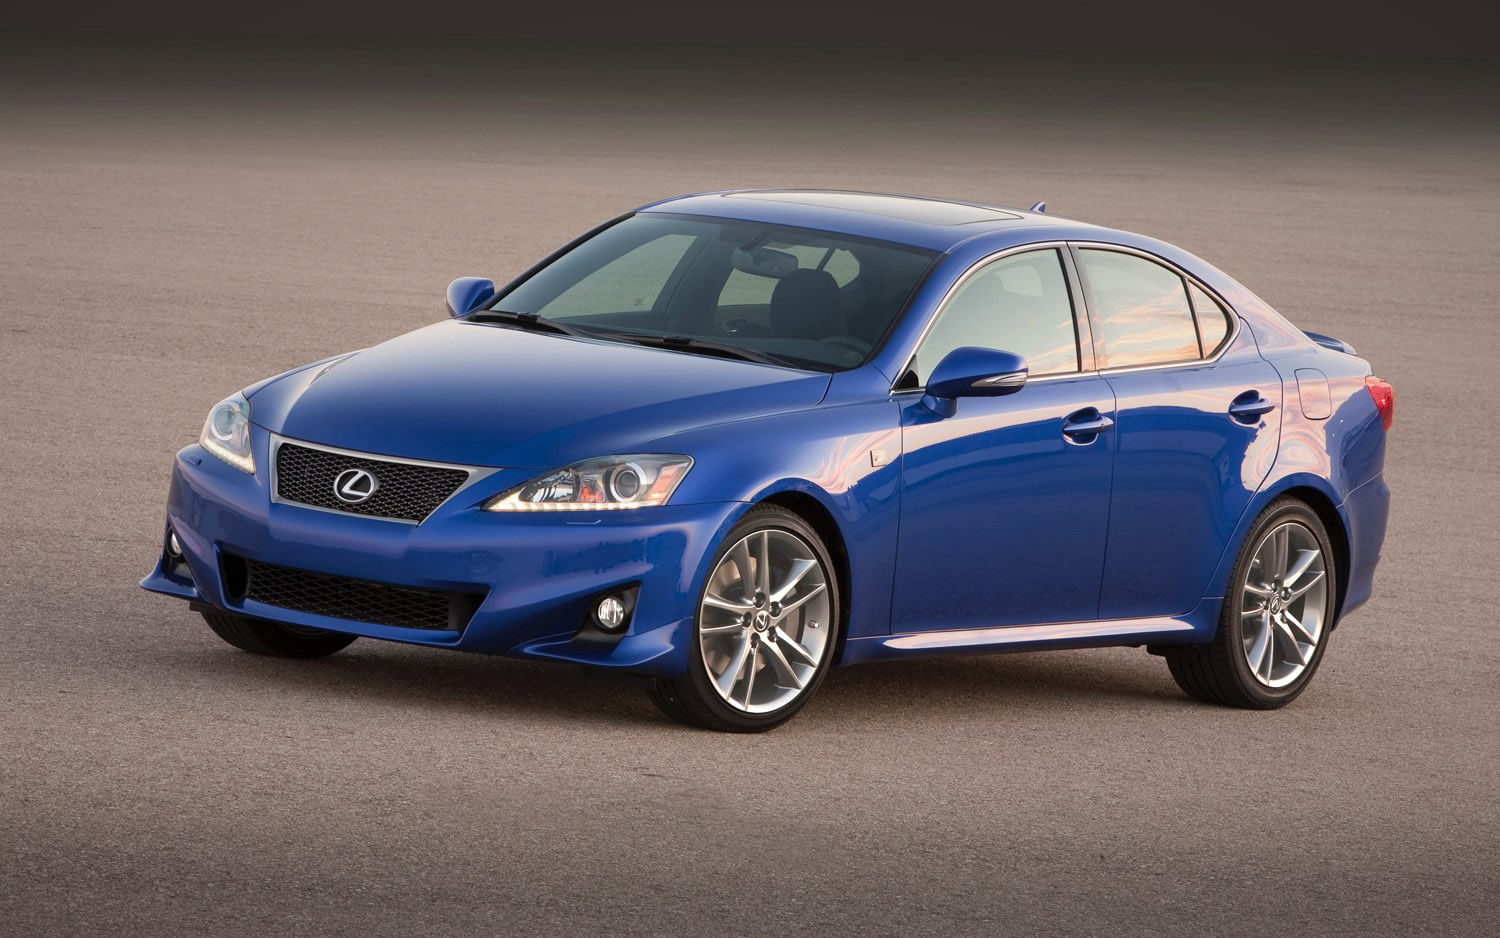 tampa specs lexus in sport call bay youtube sale price review is for and f watch